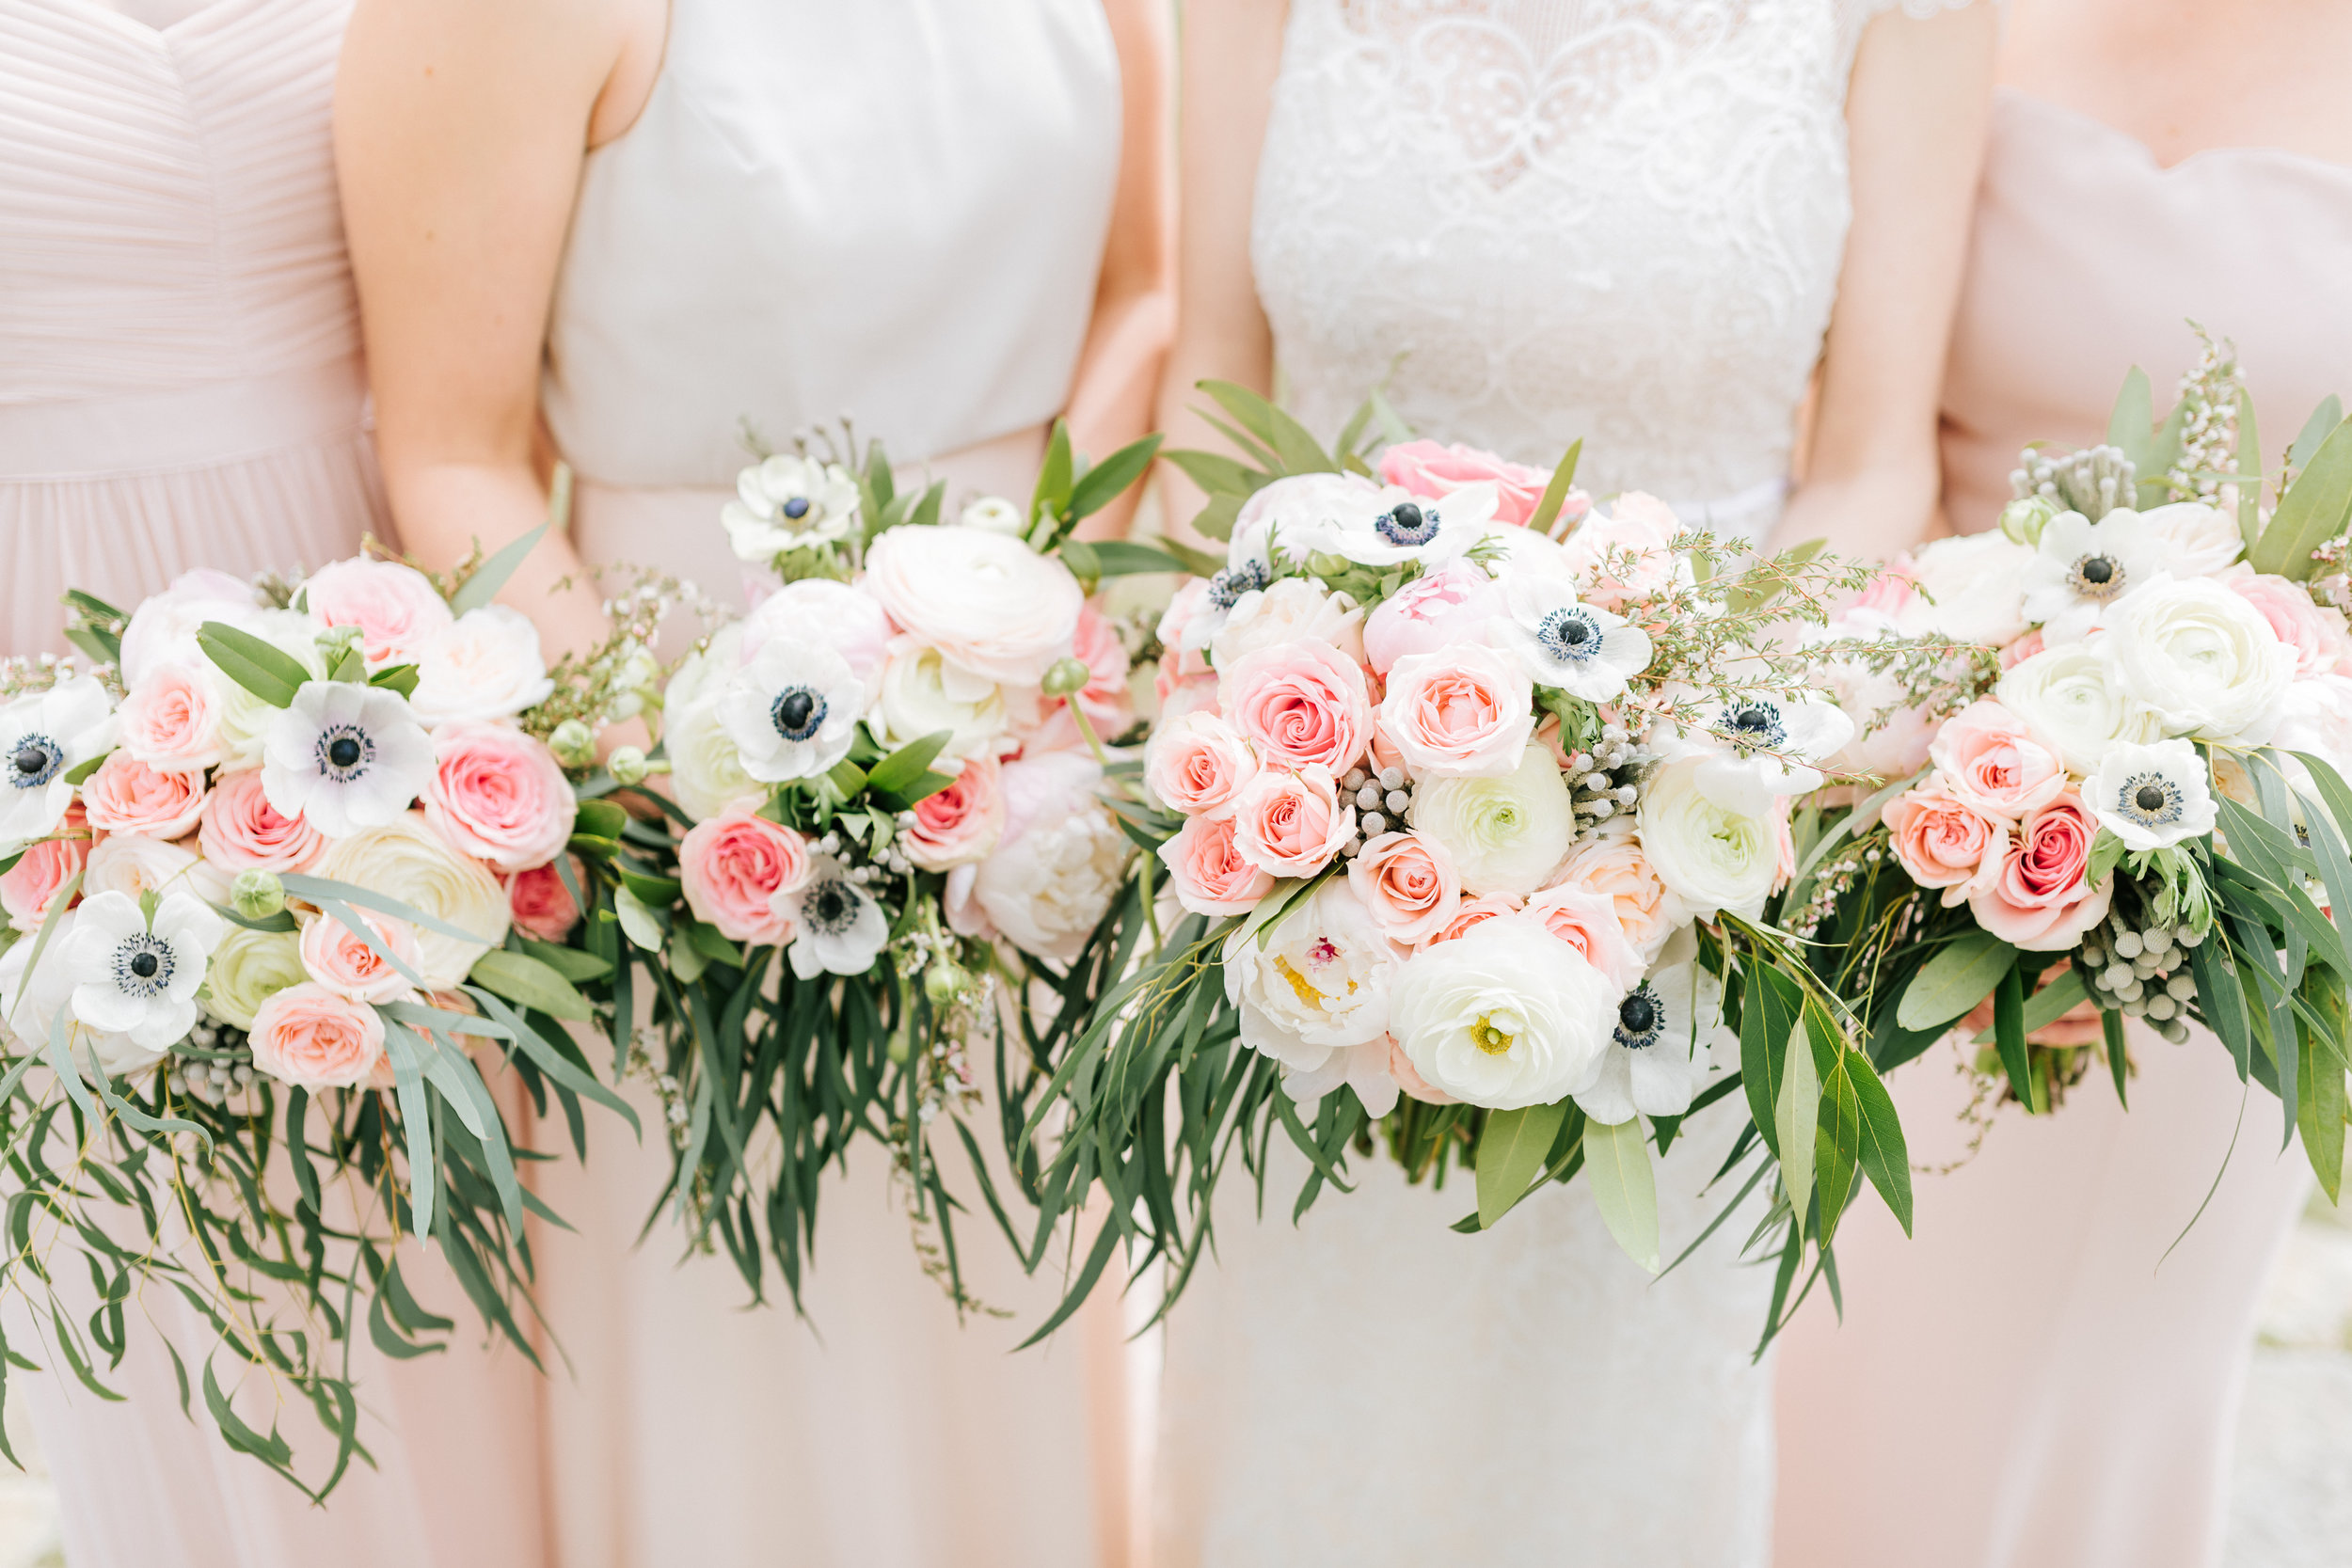 Spring Bouquets in Blush and Ivory with Ranunculus